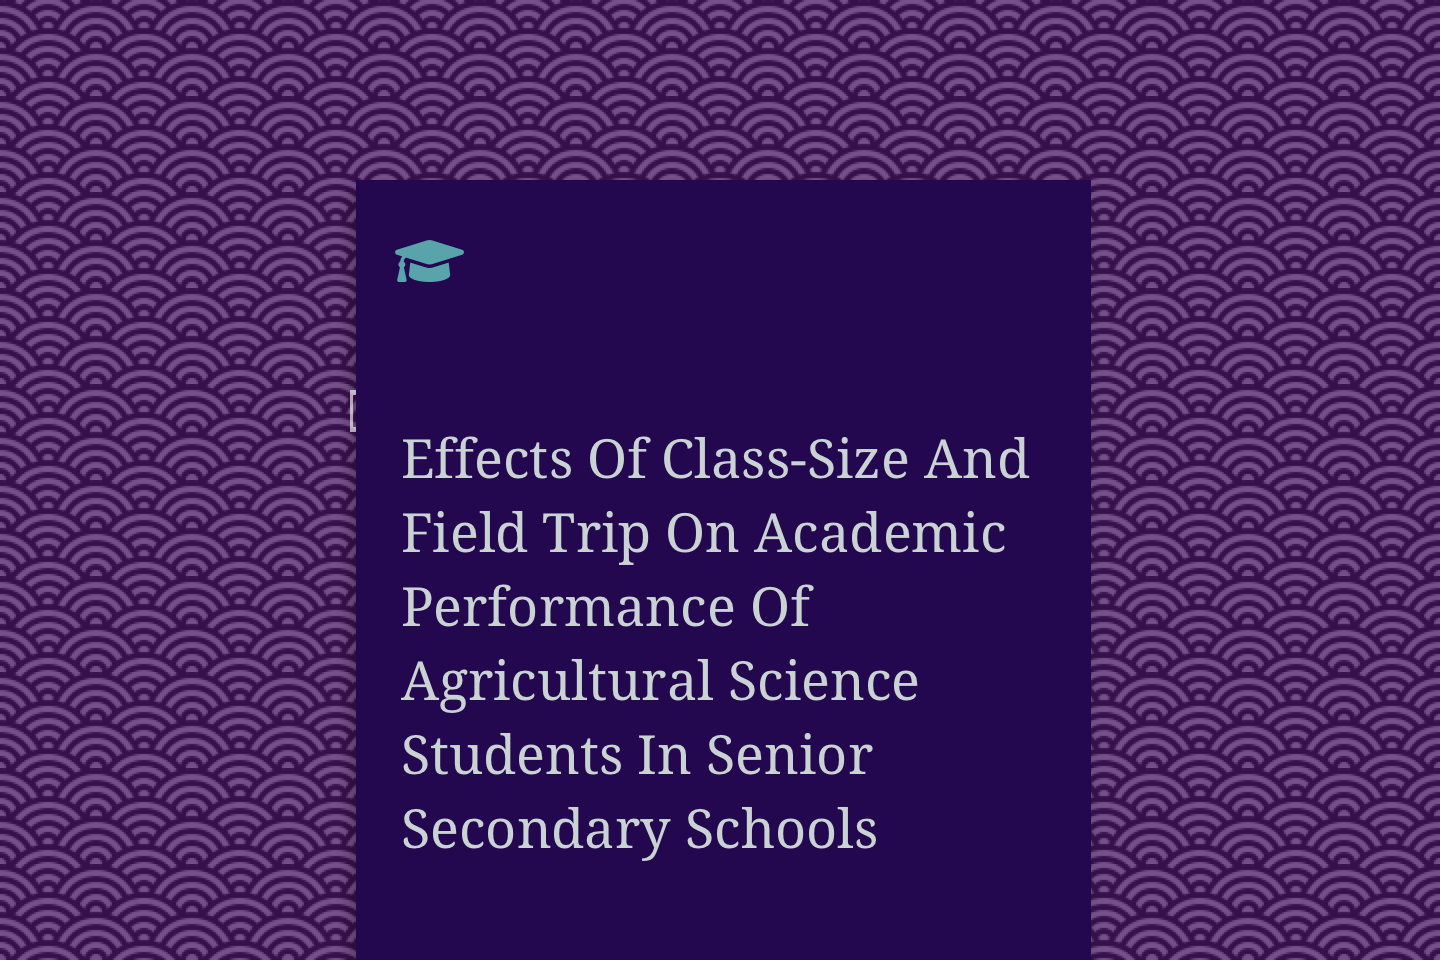 Effects Of Class-Size And Field Trip On Academic Performance Of Agricultural Science Students In Senior Secondary Schools